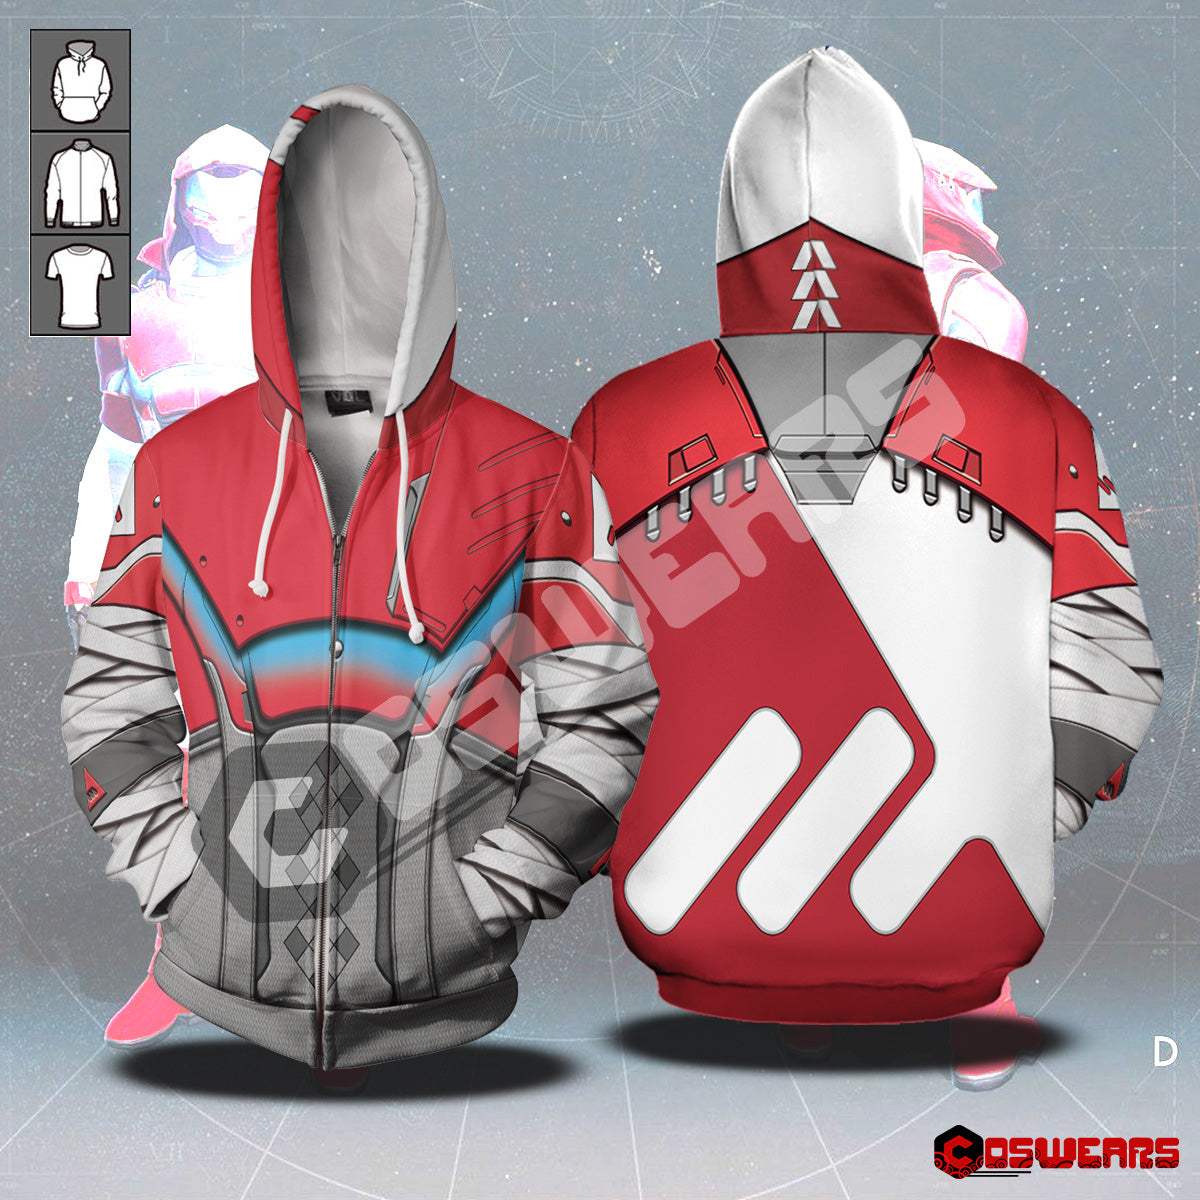 Destiny Hunter - NM Chroma Zipped Hoodie